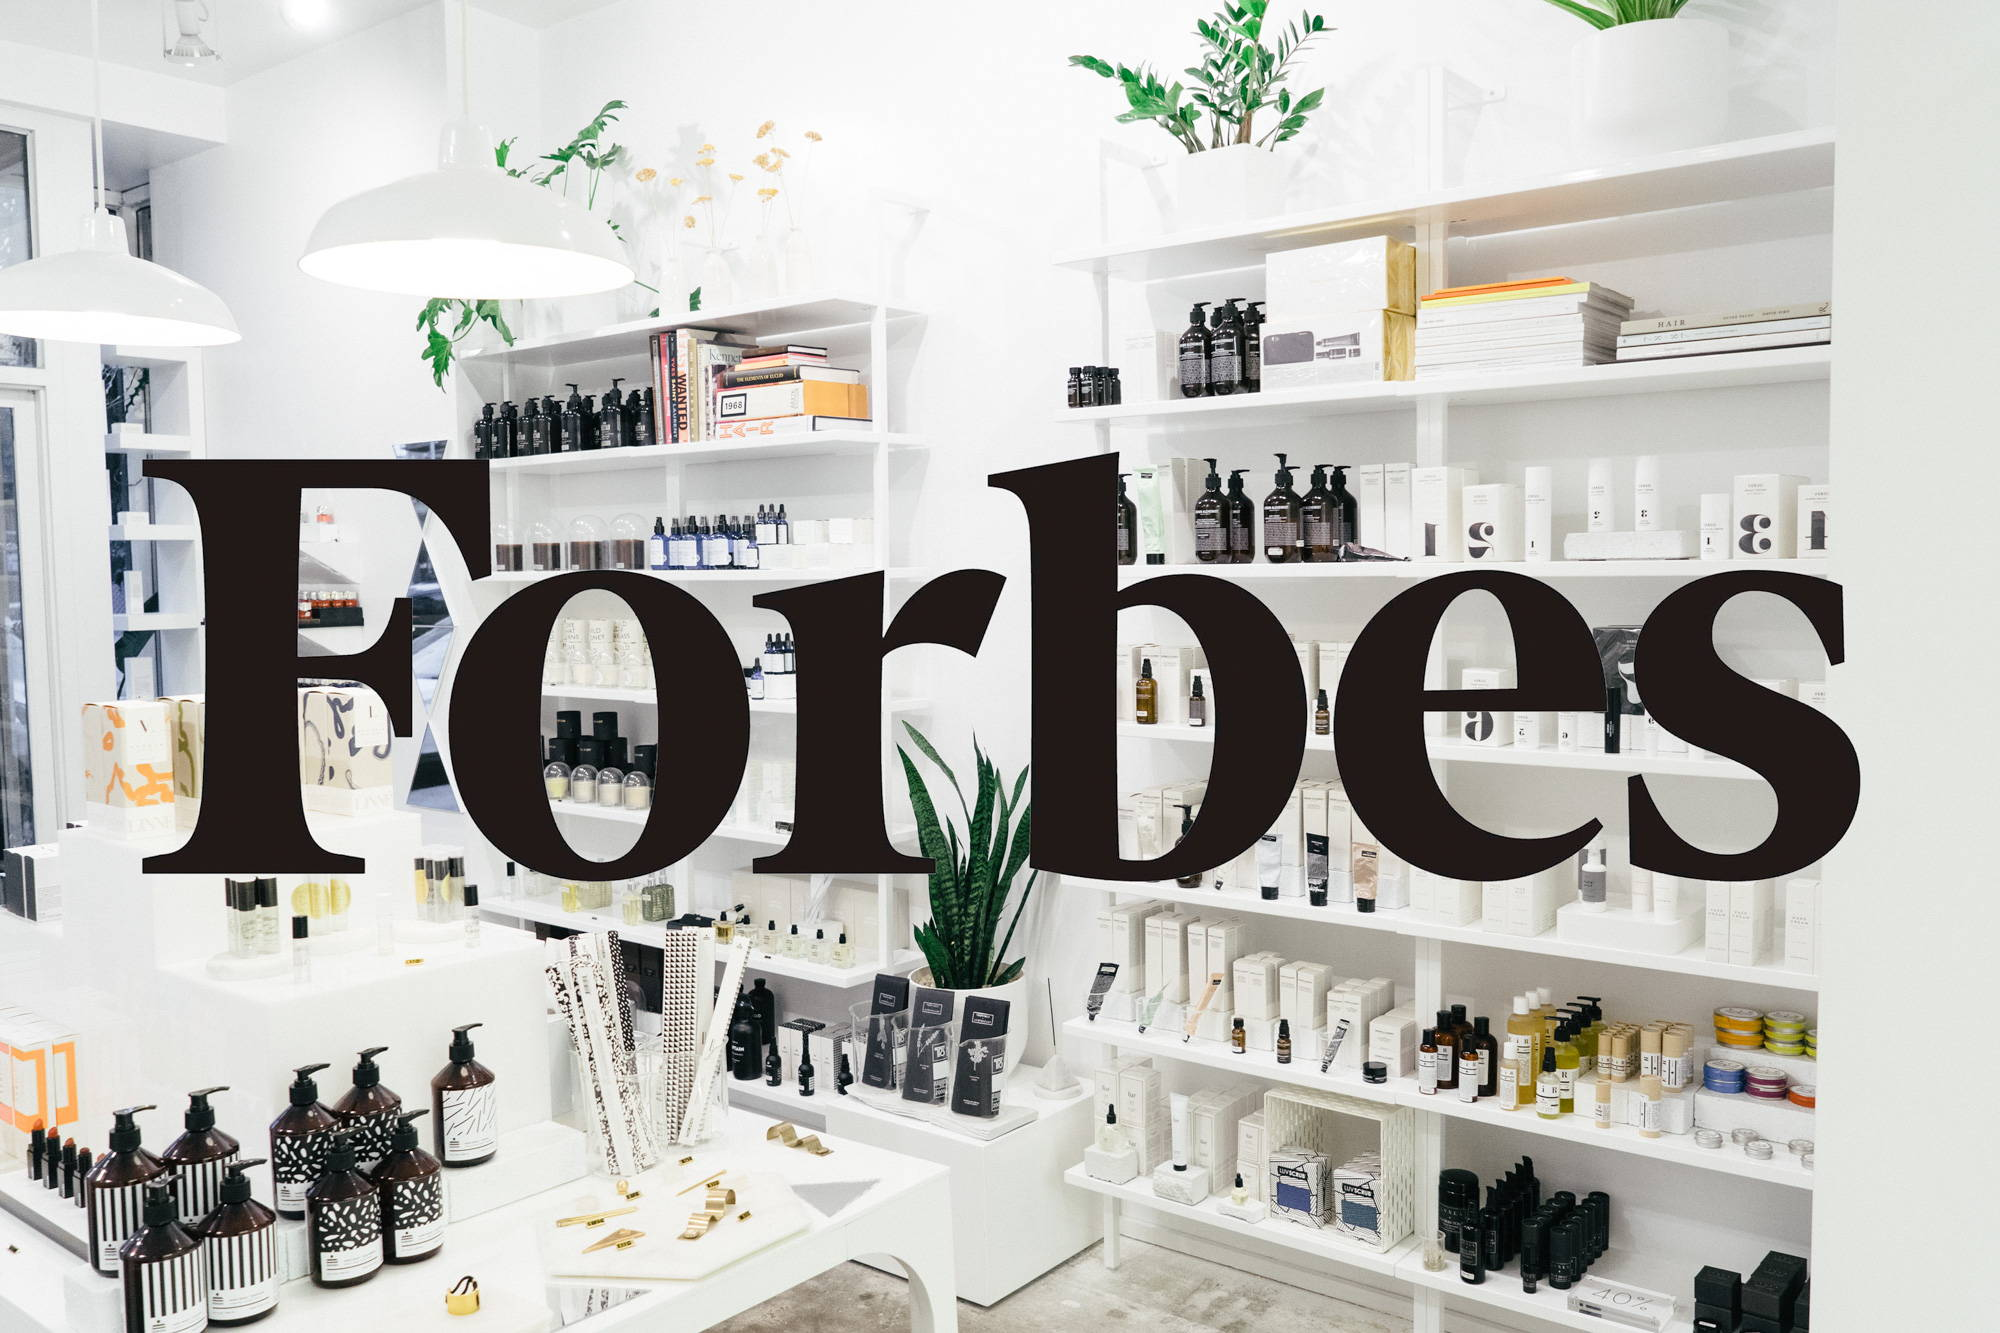 FORBES | The Self-Care Generation Wants Experience At Retail